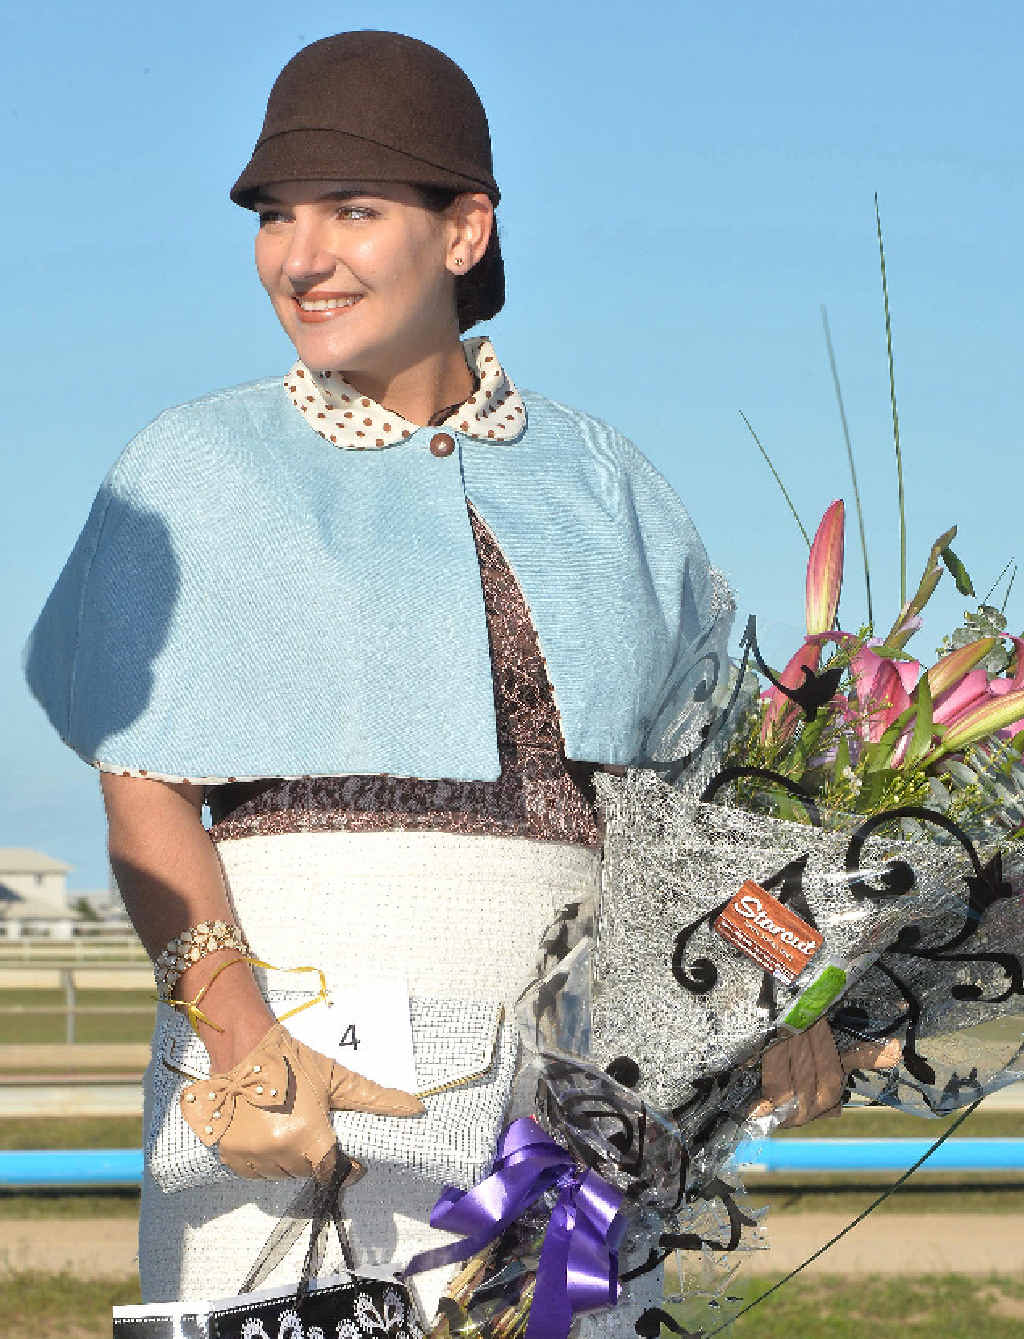 STYLISH: Winner of Fashions of the field Amanda Barry at the Mackay Amateurs race day.